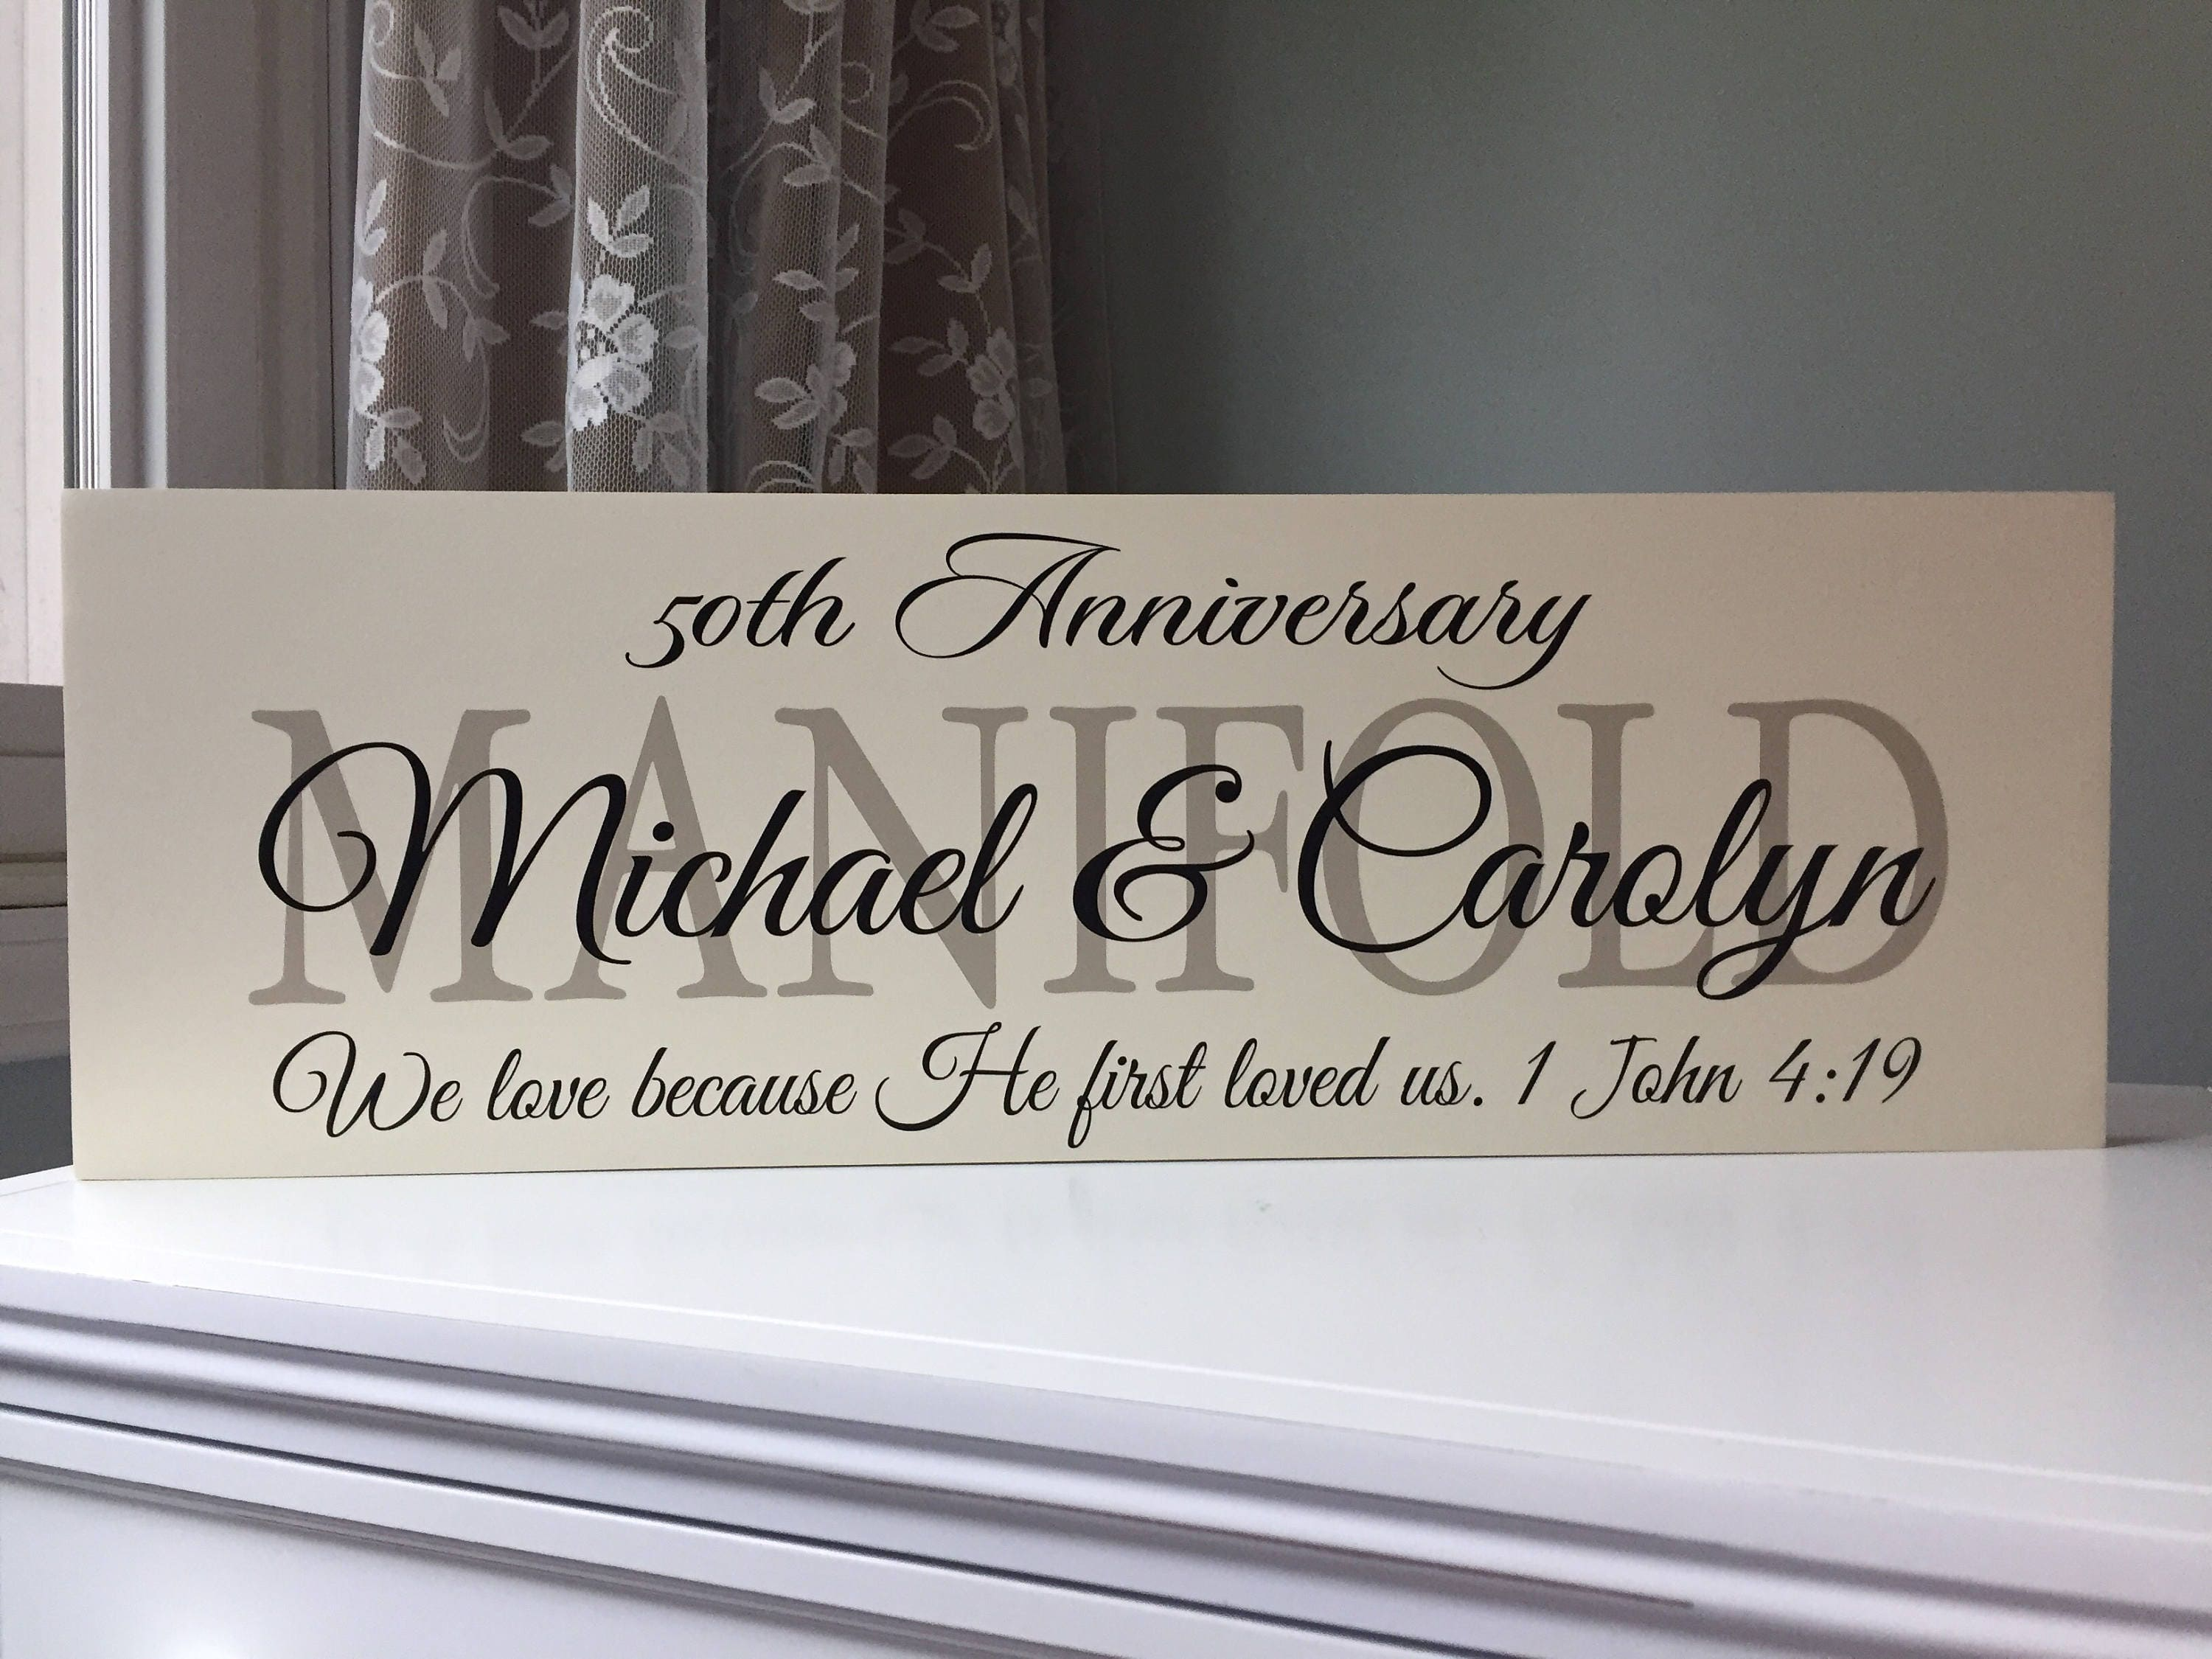 Gift Ideas For 50th Wedding Anniversary Party: 50th Wedding Anniversary Gifts For Parents-Gift Ideas-party